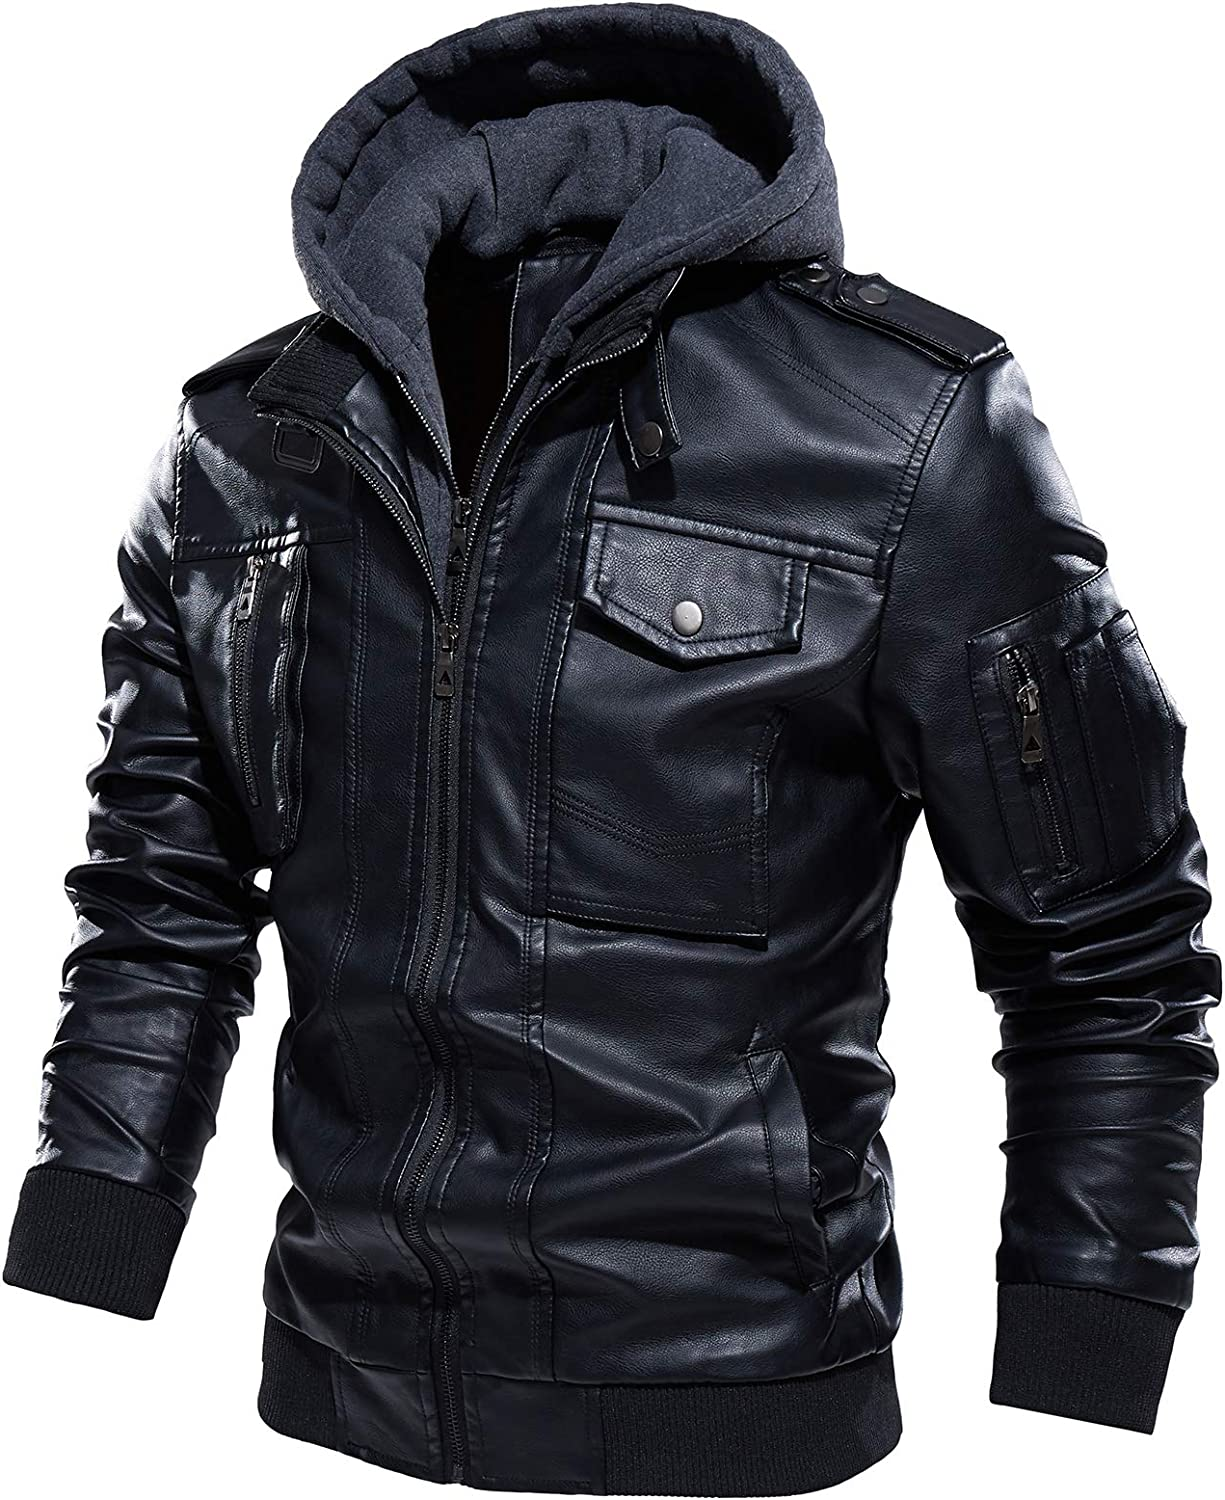 Mens Faux PU Leather Jacket Motorcycle Biker Zip Up Stand Collar Warm Jacket with Removable Hood (Free mask Included)